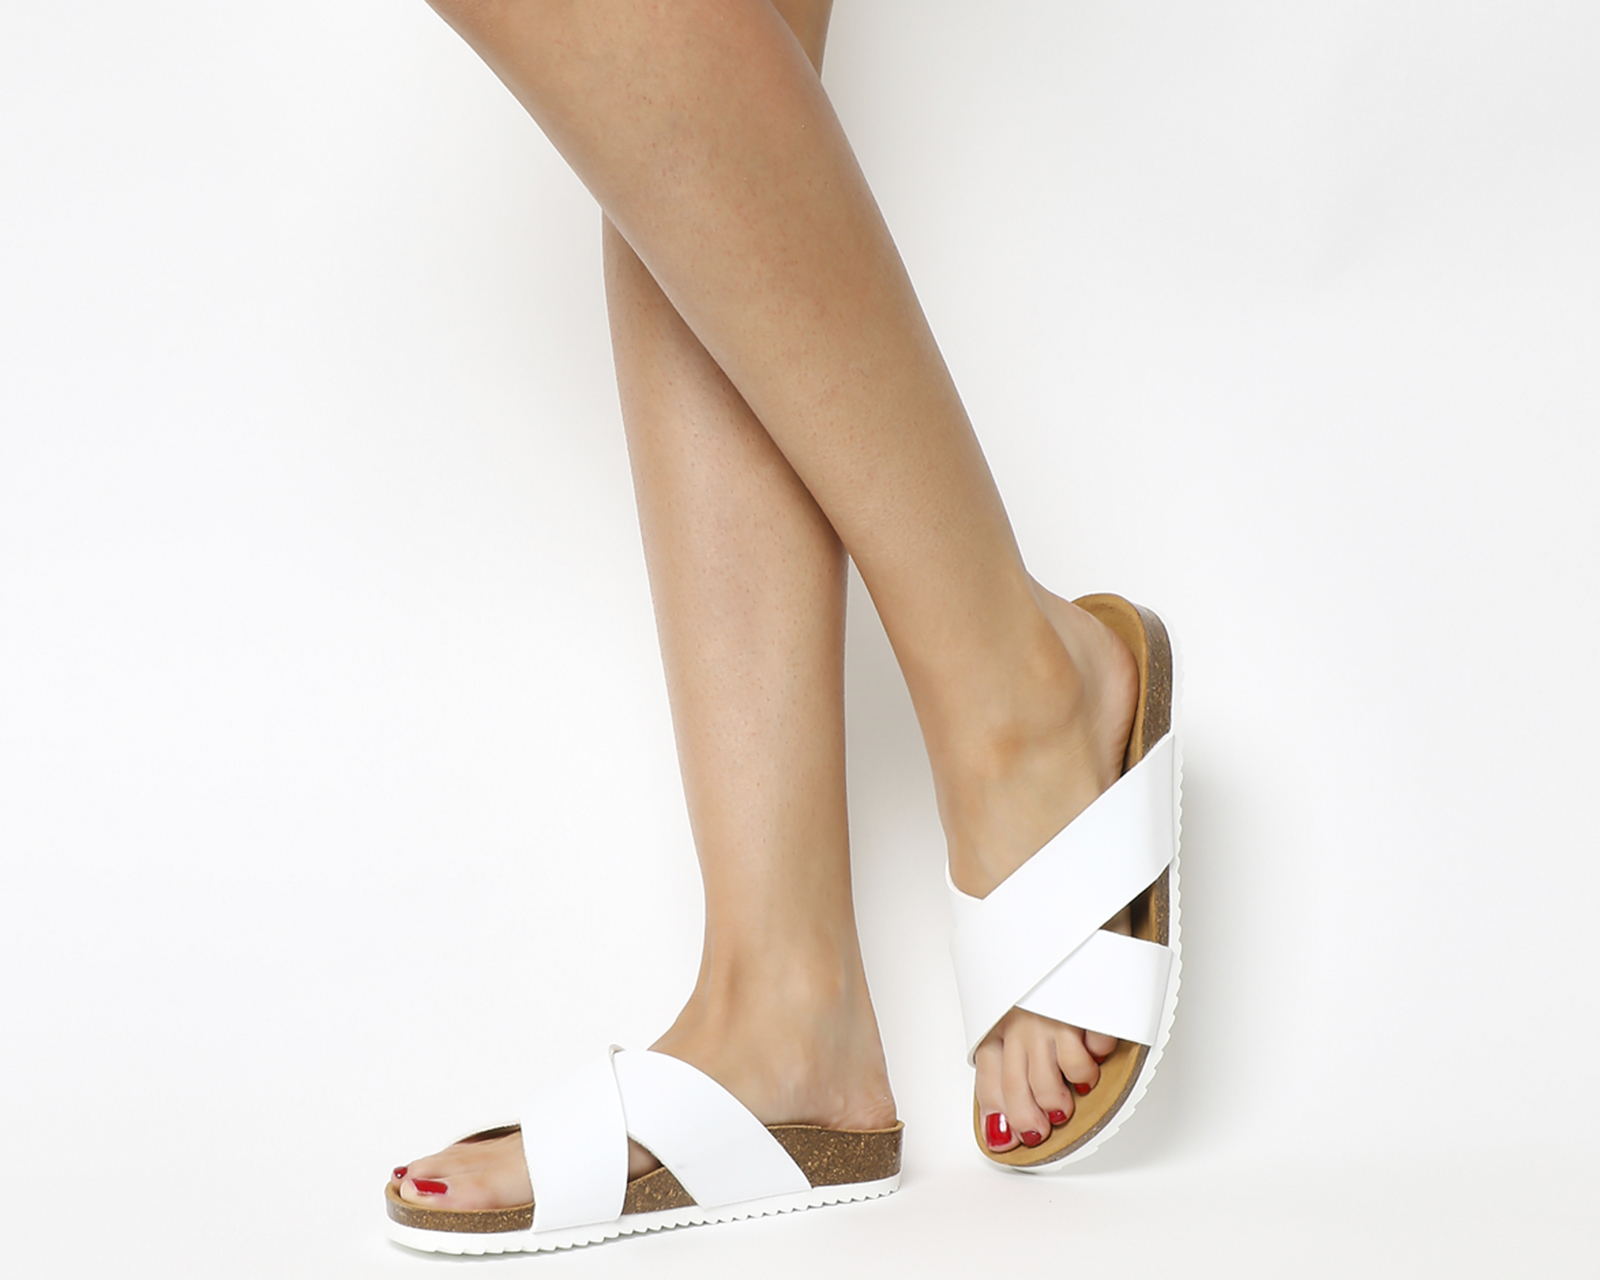 b1c458a29540 Sentinel Womens Office Hoxton 2 Sandals White Sandals